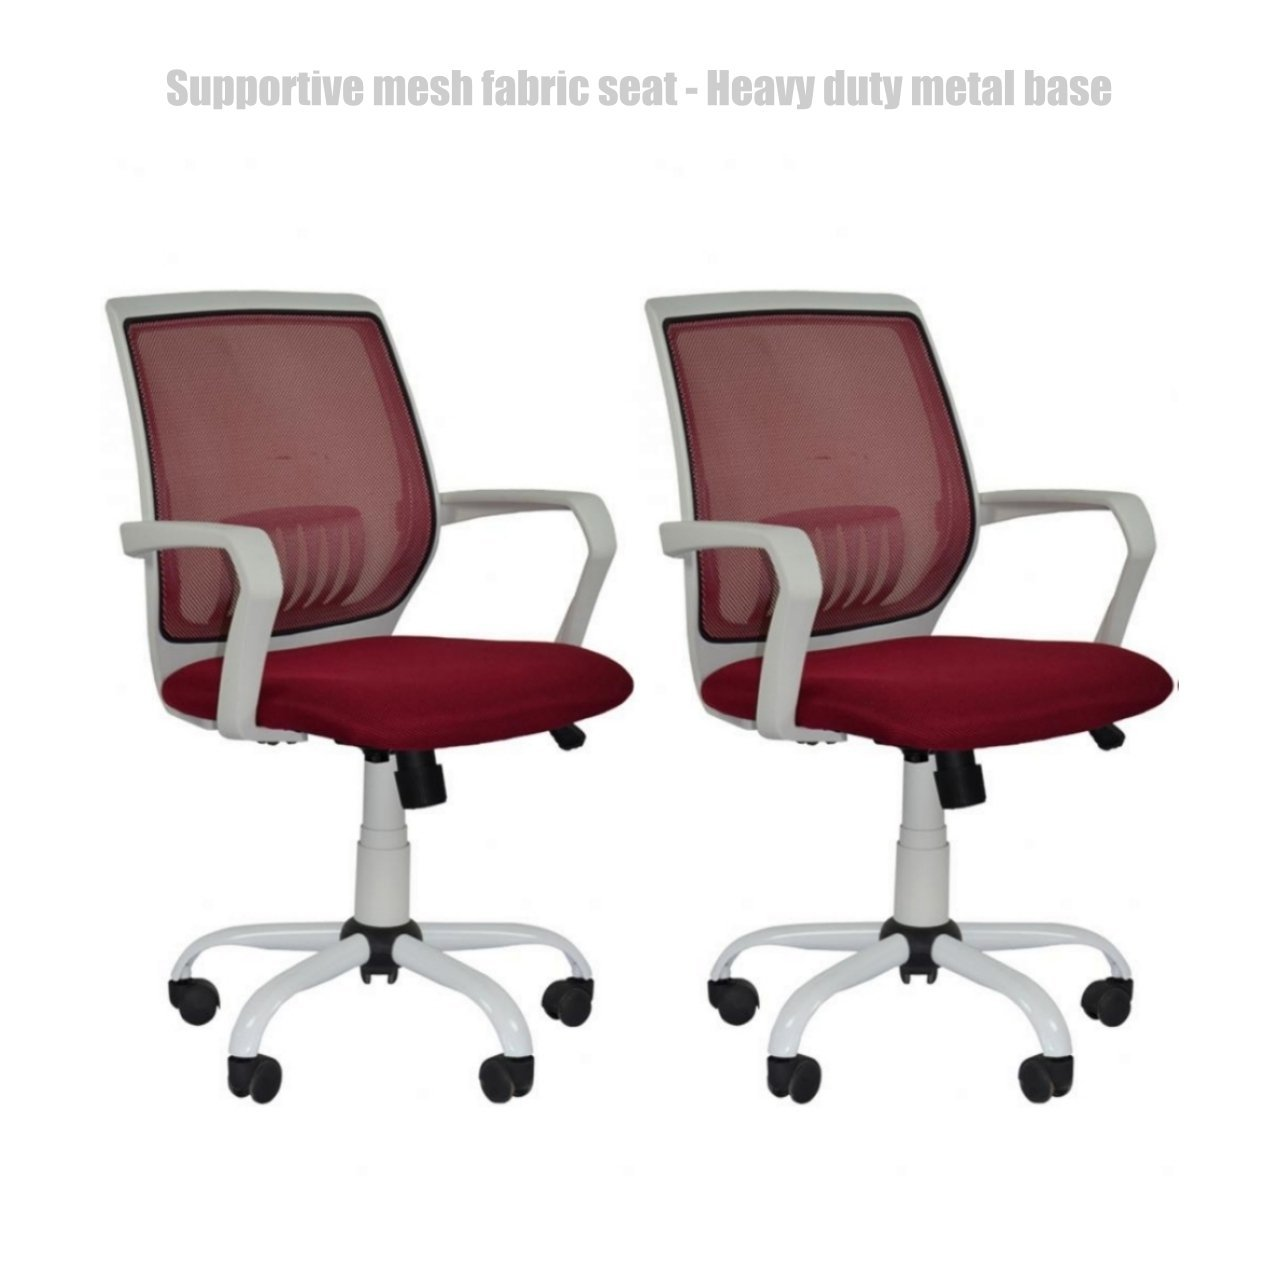 Modern Office Desk Task Chair Mid Back Design Breathable-Mesh-Fabric Comfortable Armrests Heavy Duty Metal Base Ergonomic Design Executive Chair - Set of 2 Burgundy #1492a